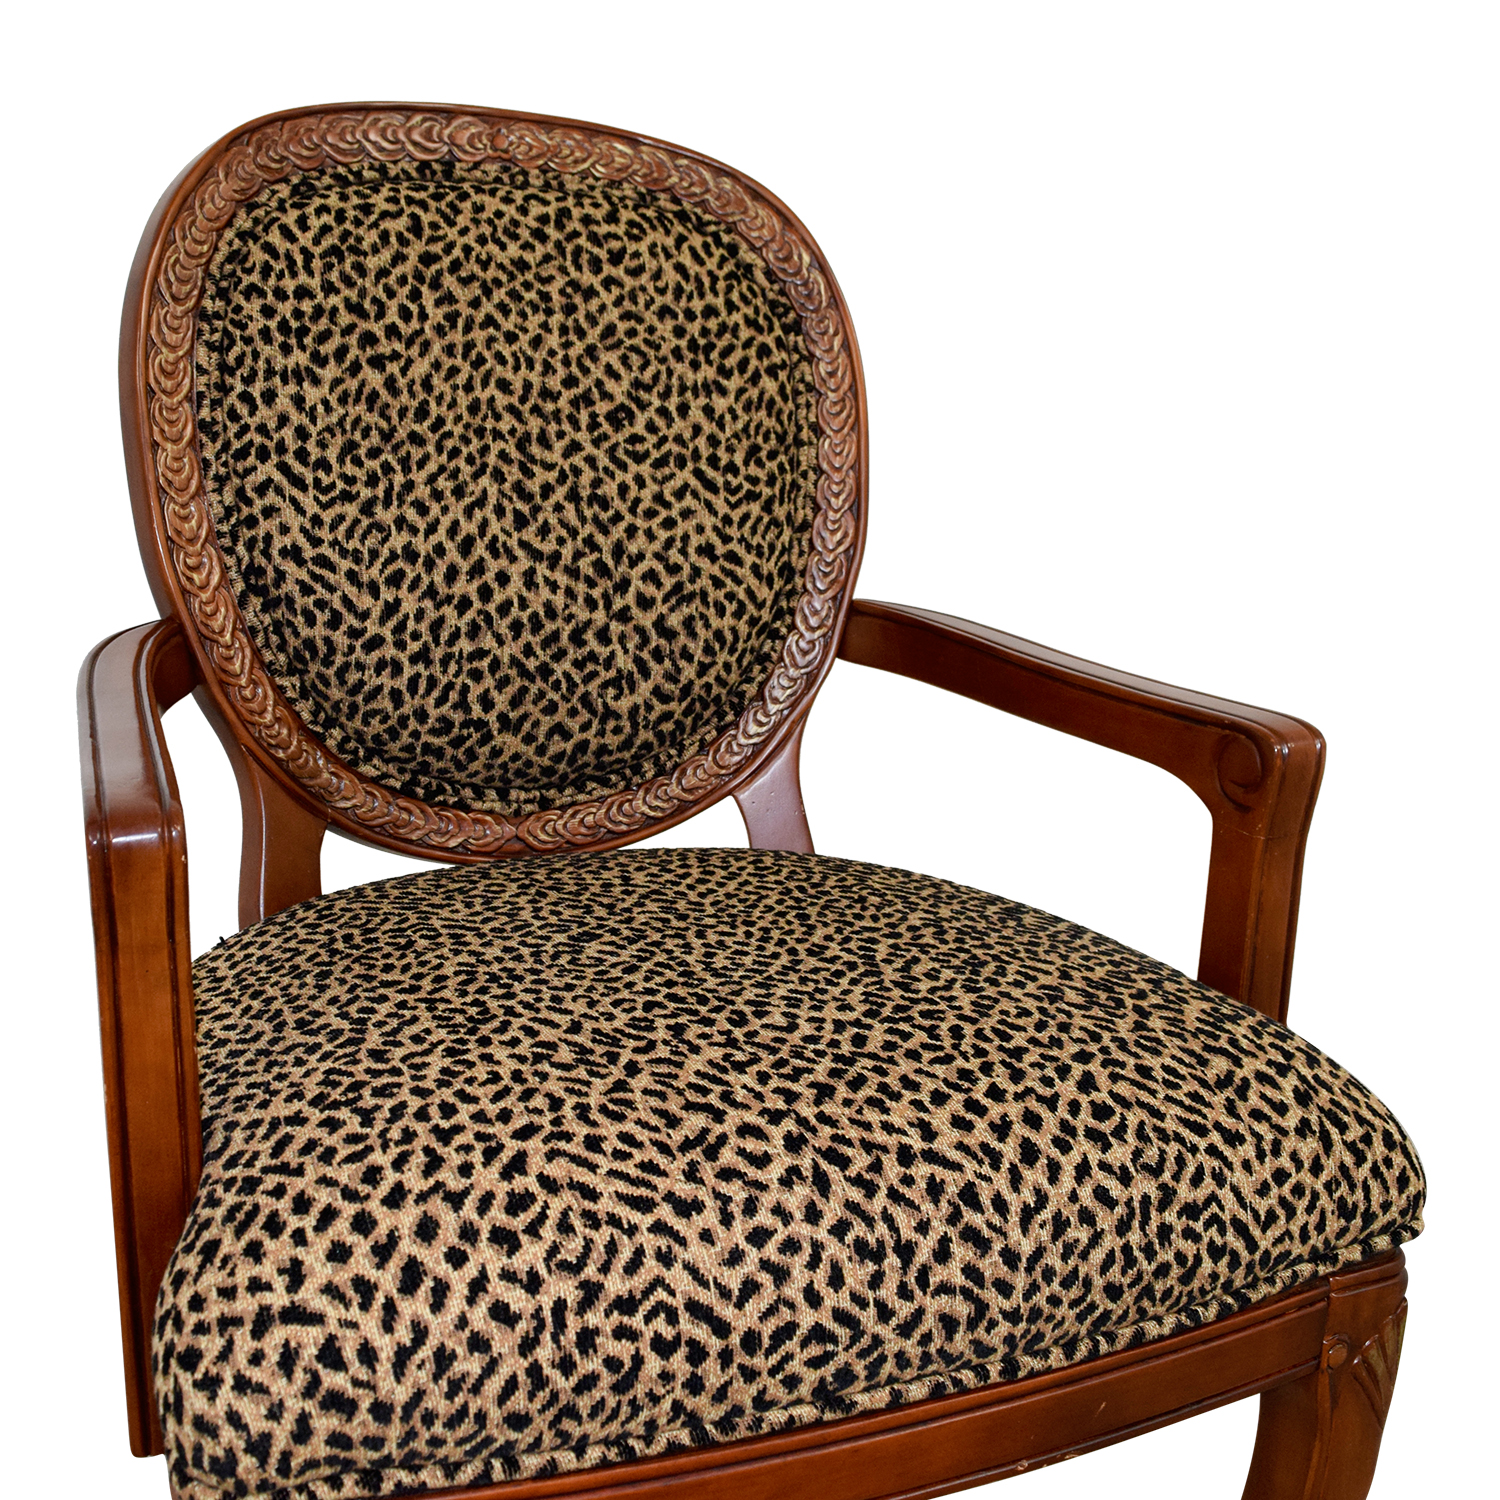 Genial 63% OFF   Leopard Upholstered Wood Arm Chair / Chairs